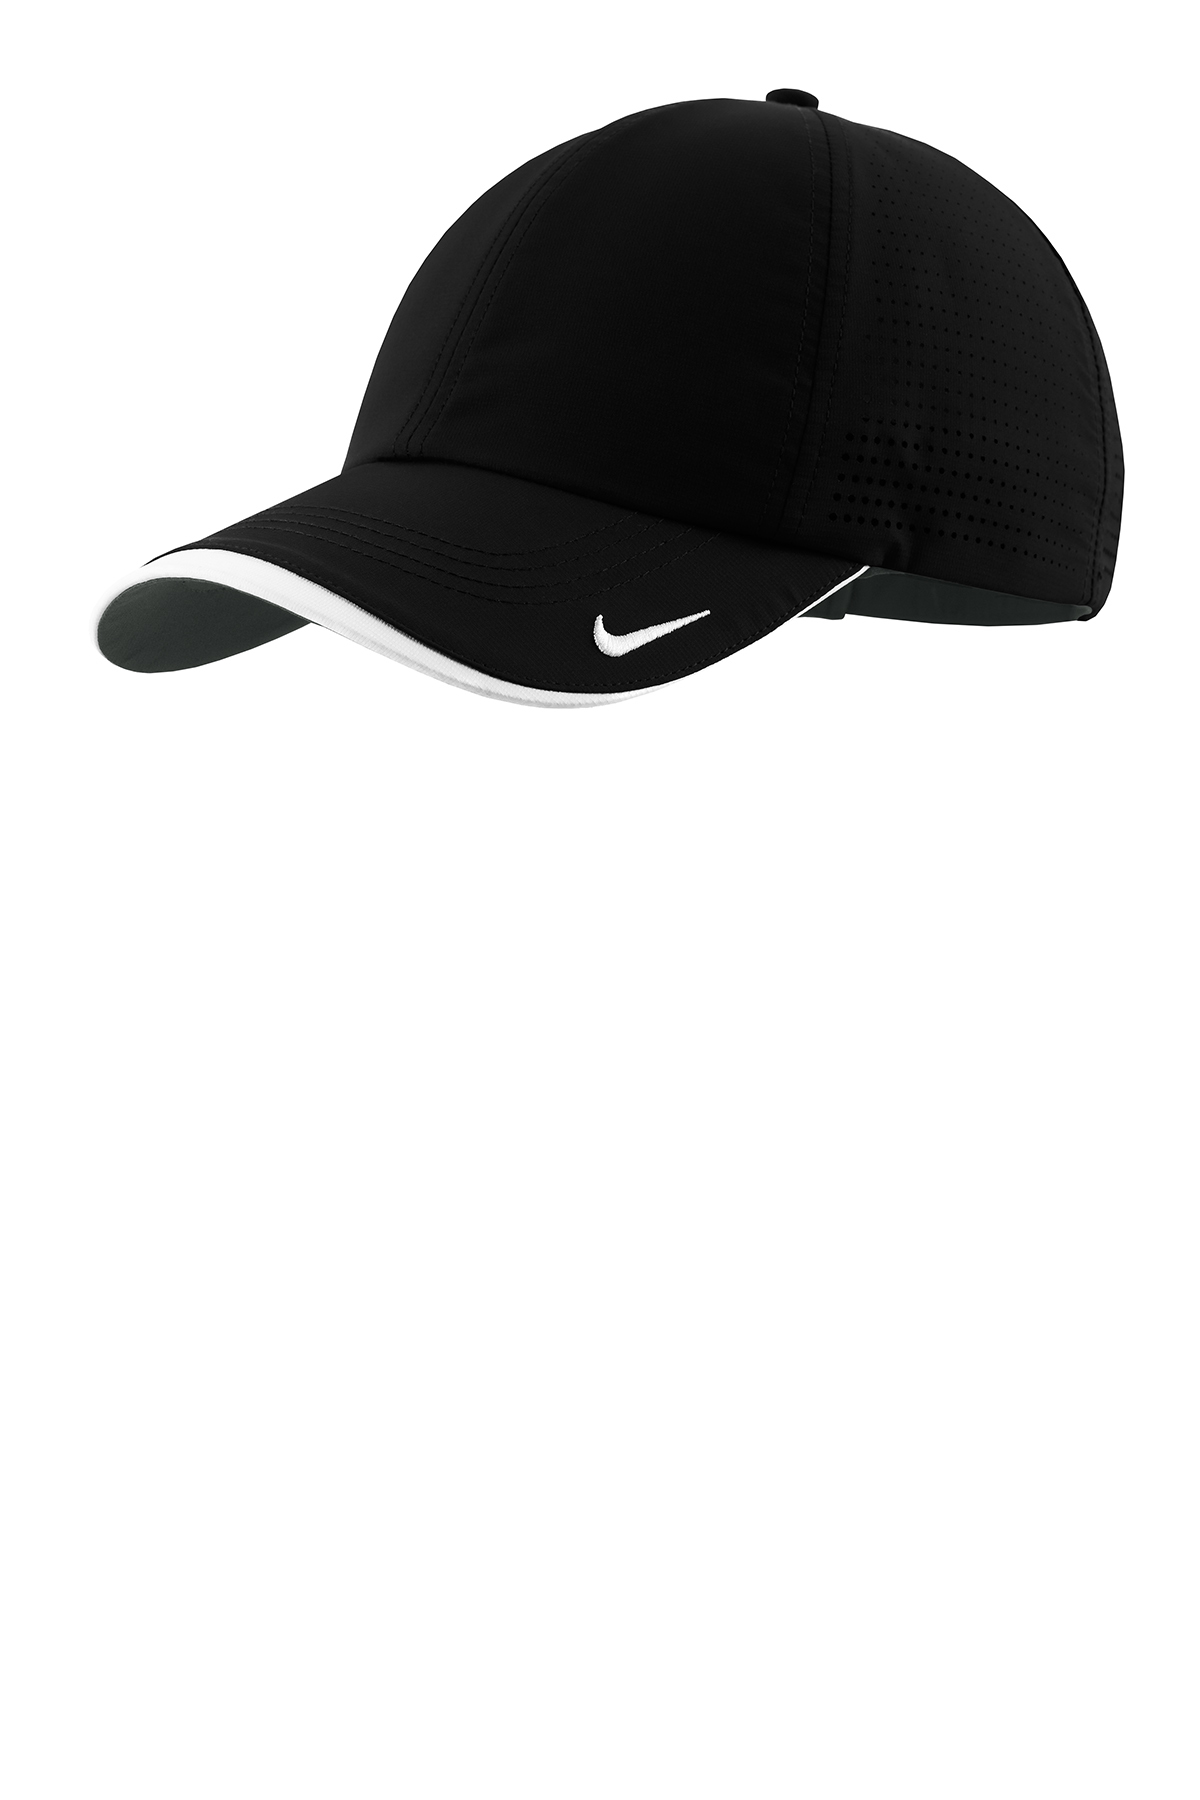 Nike Dri-FIT Swoosh Perforated Cap  6b53e1727ea